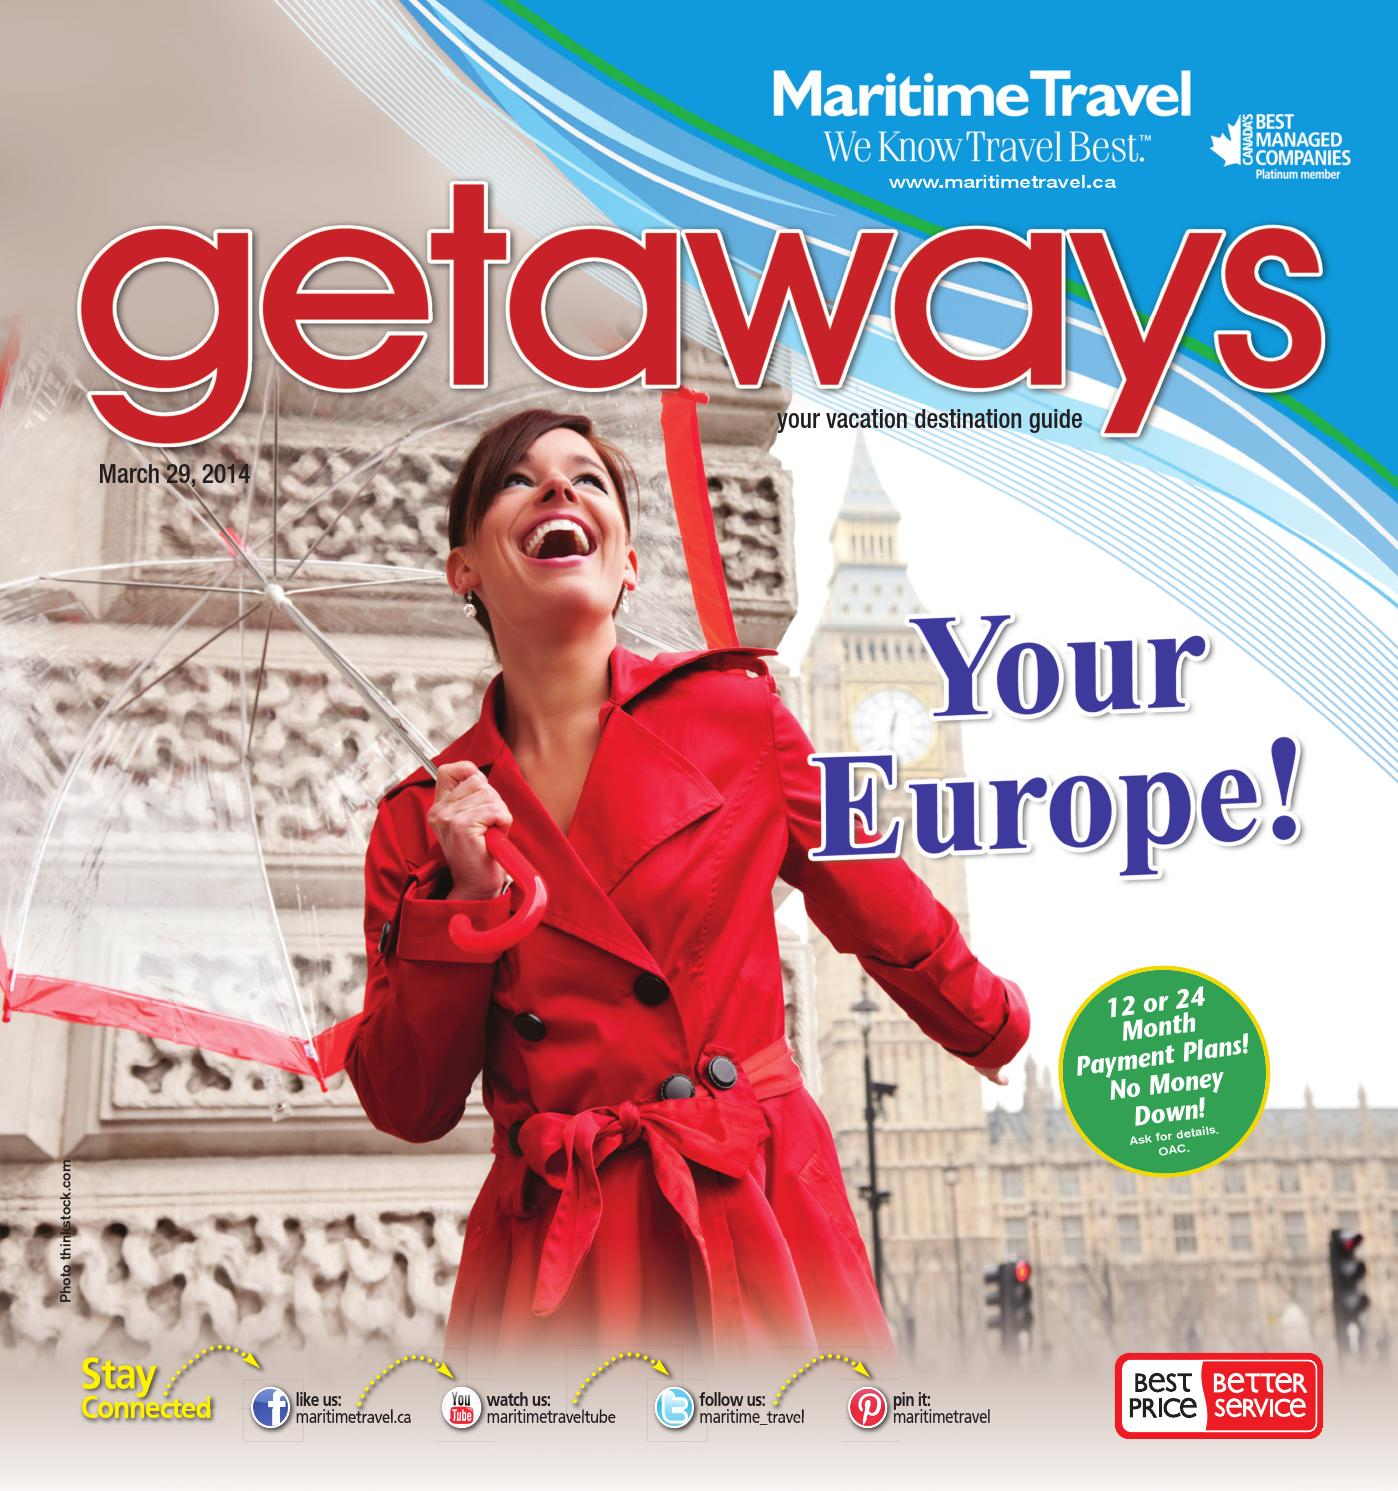 Maritime Travel - Getaways - March 29, 2014 by Marty Fisher - issuu